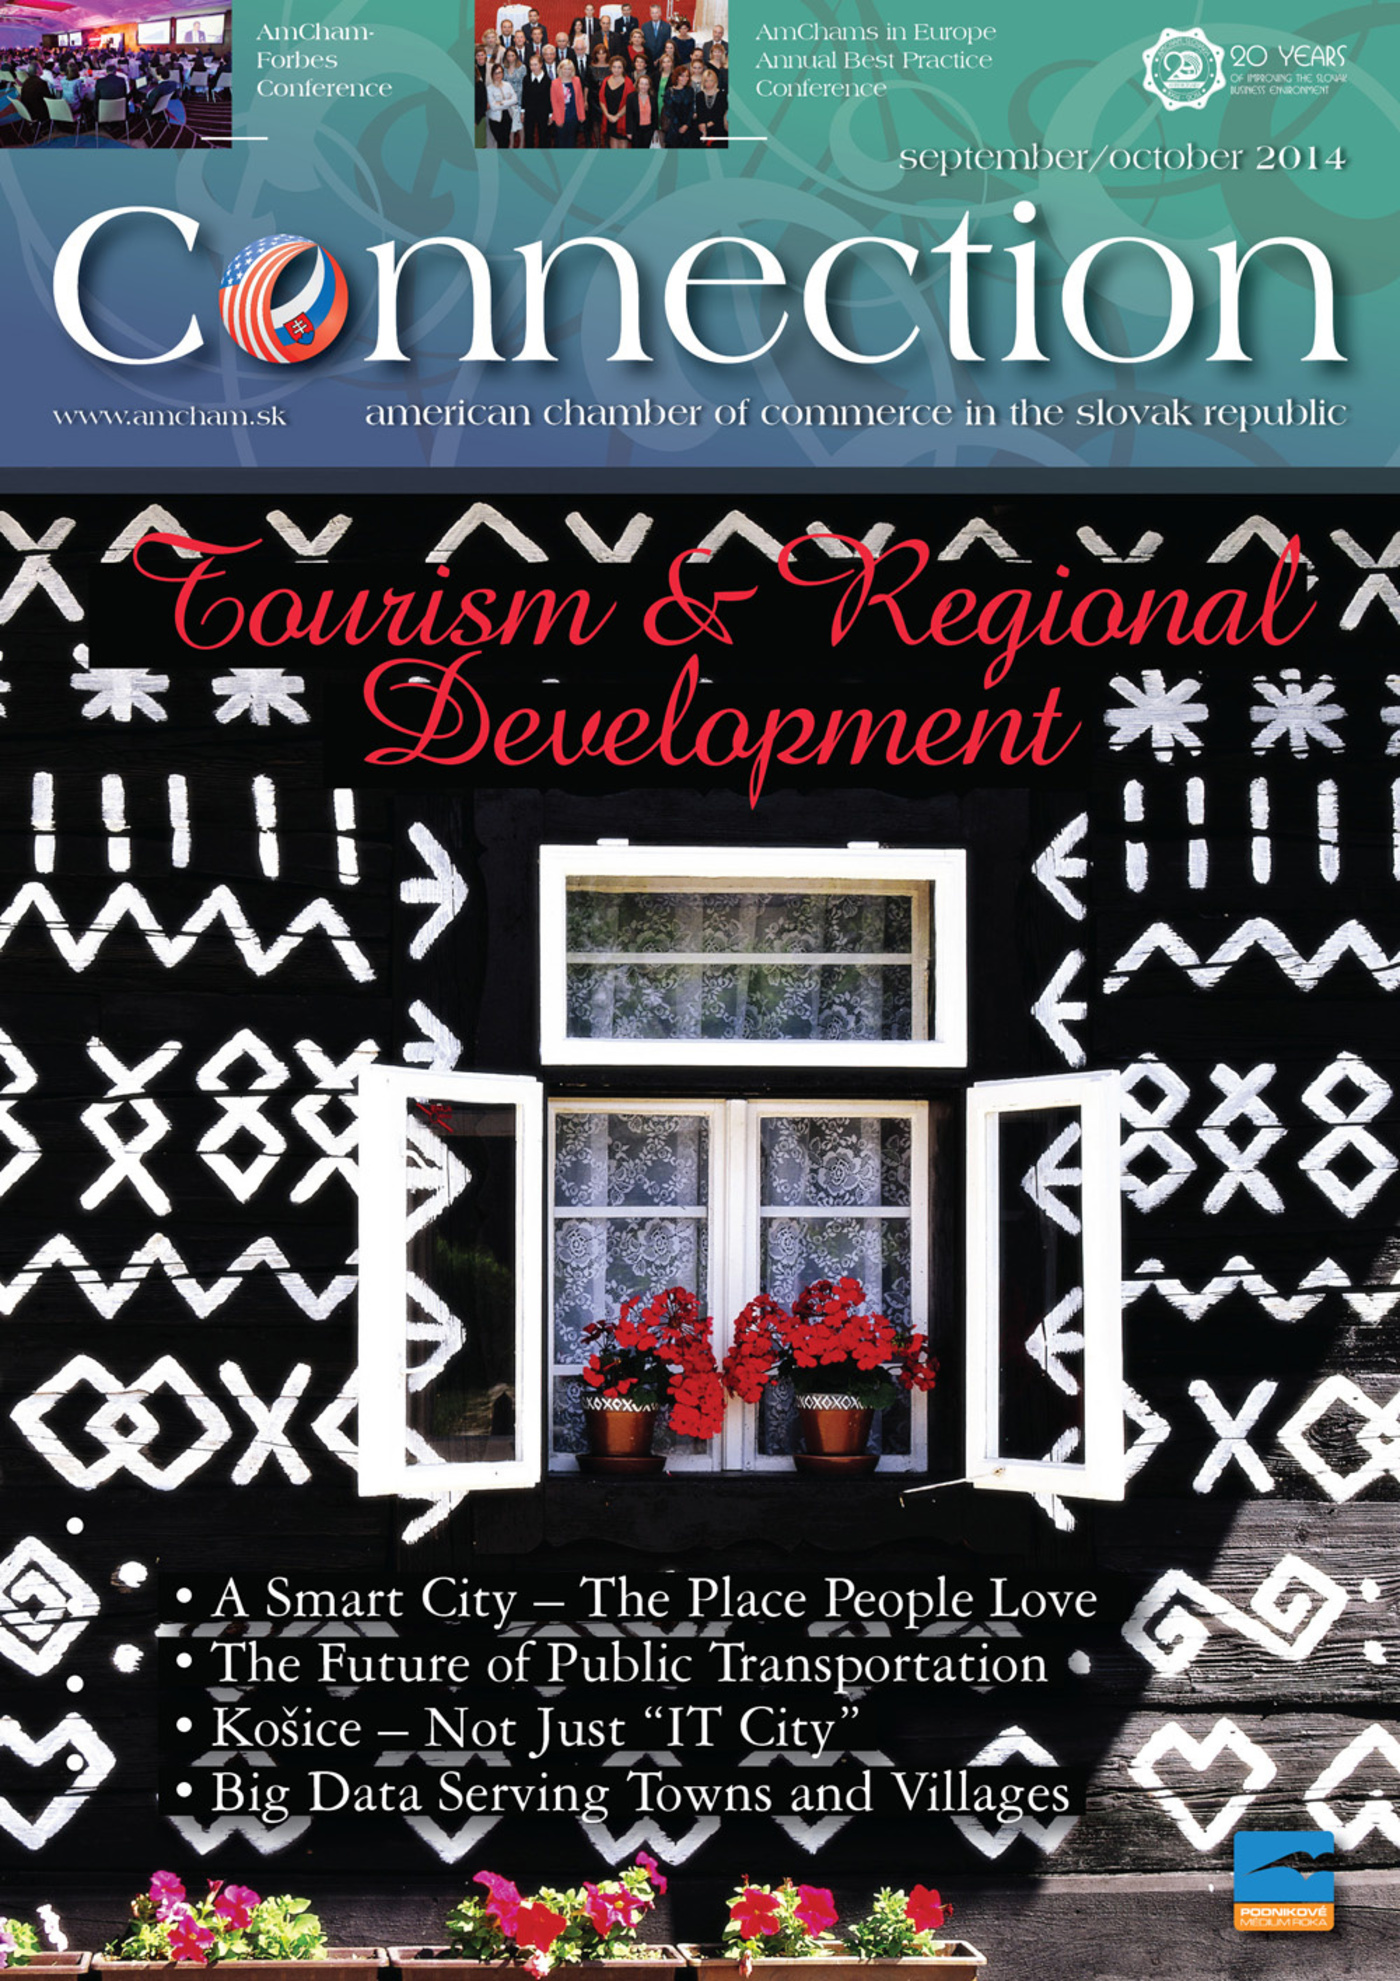 2014-09 / Tourism and regional development